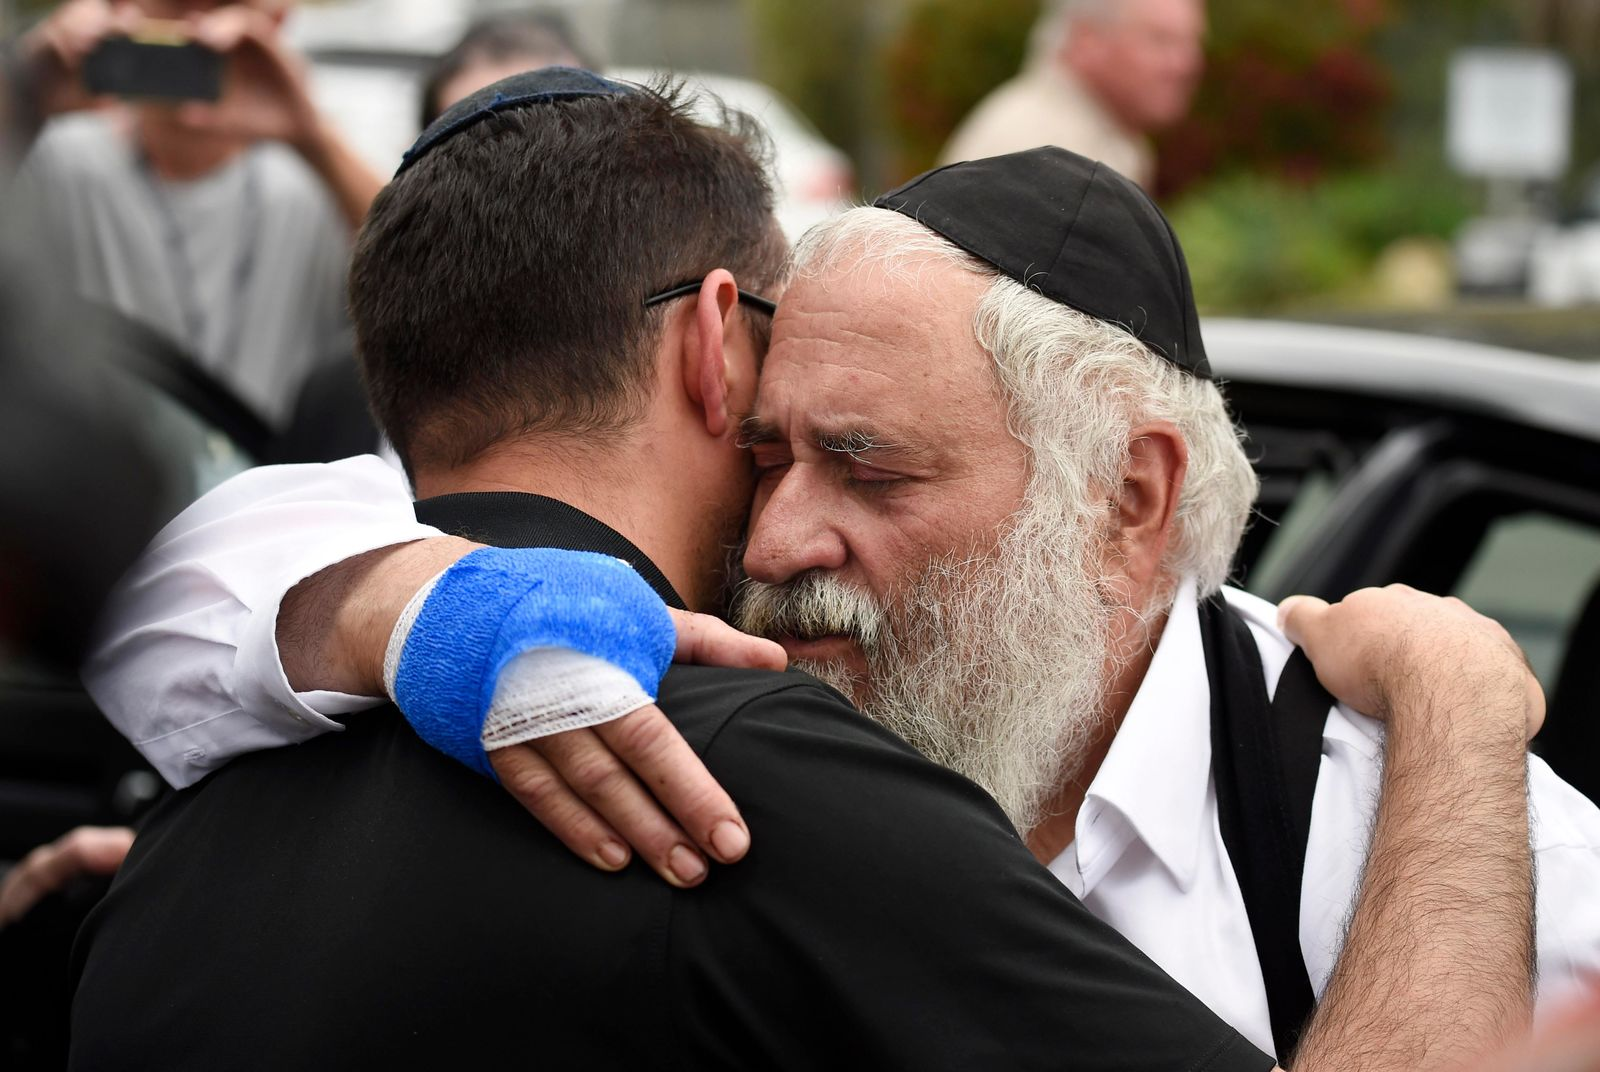 FILE - In this April 28, 2019, file, photo, Rabbi Yisroel Goldstein, right, is hugged as he leaves a news conference at the Chabad of Poway synagogue in Poway, Calif. (AP Photo/Denis Poroy, File)